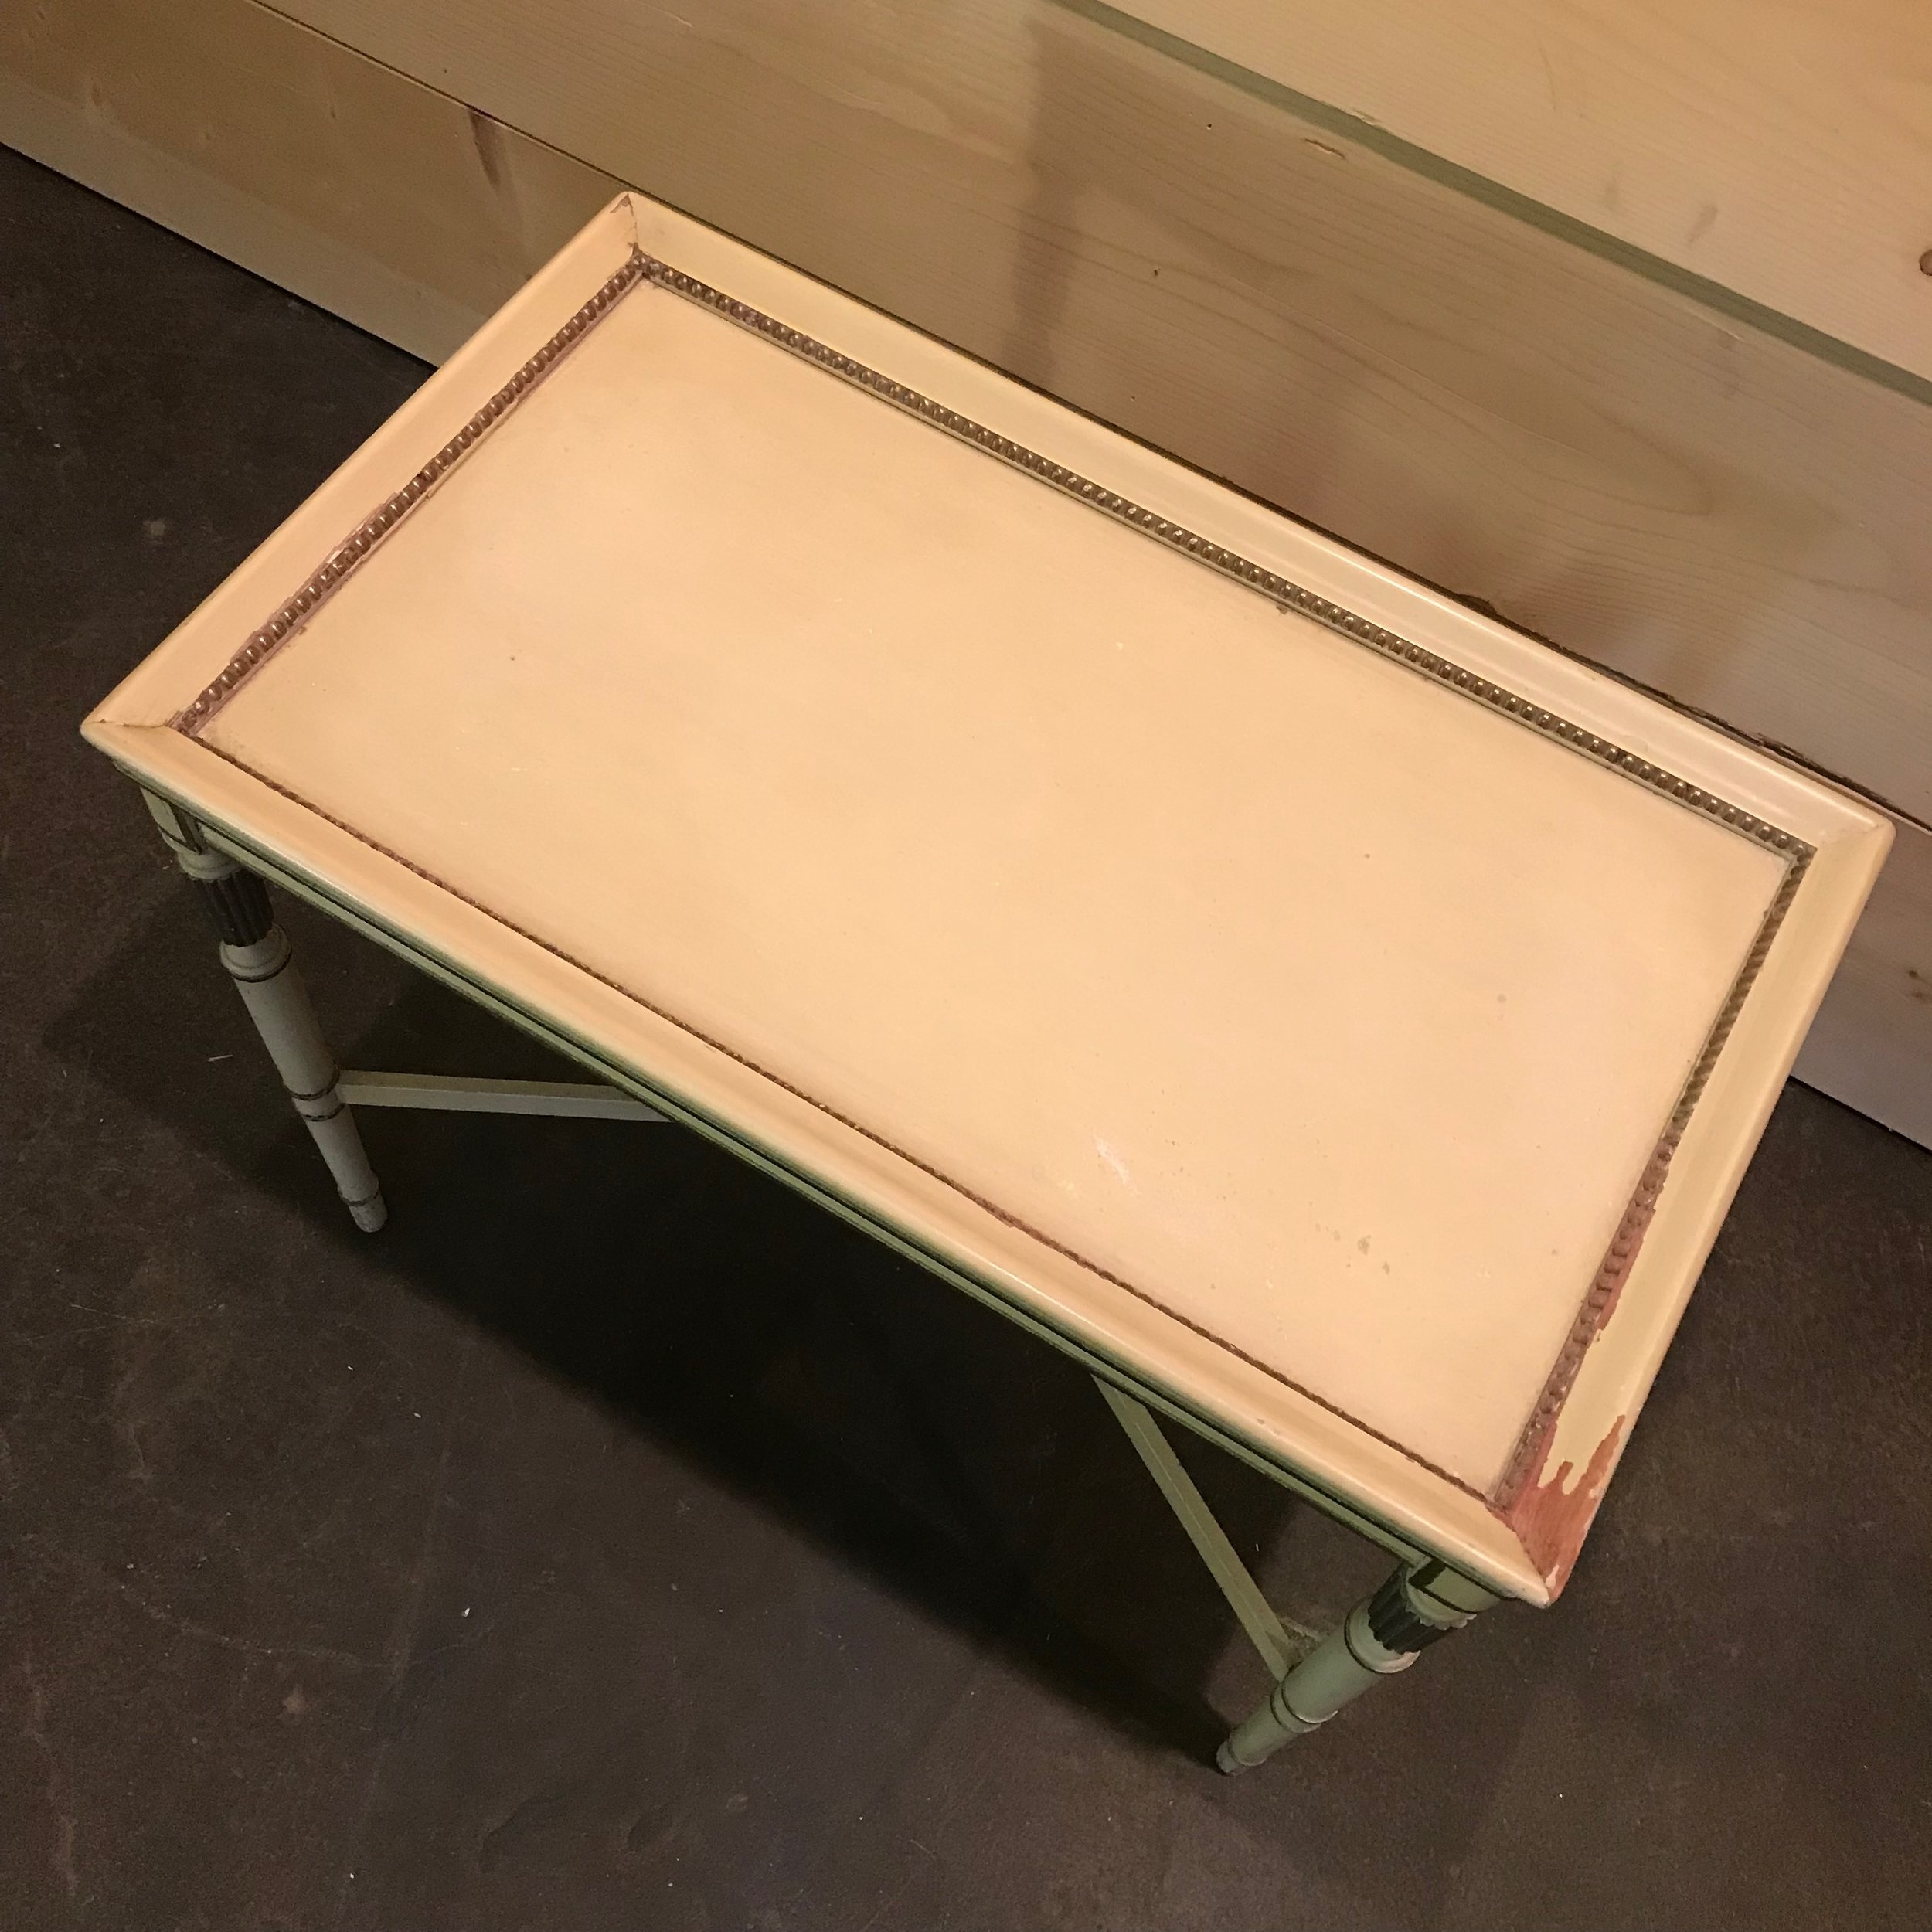 Hollywood glam side table in off-white with gold leafing. vintage furniture to rent.